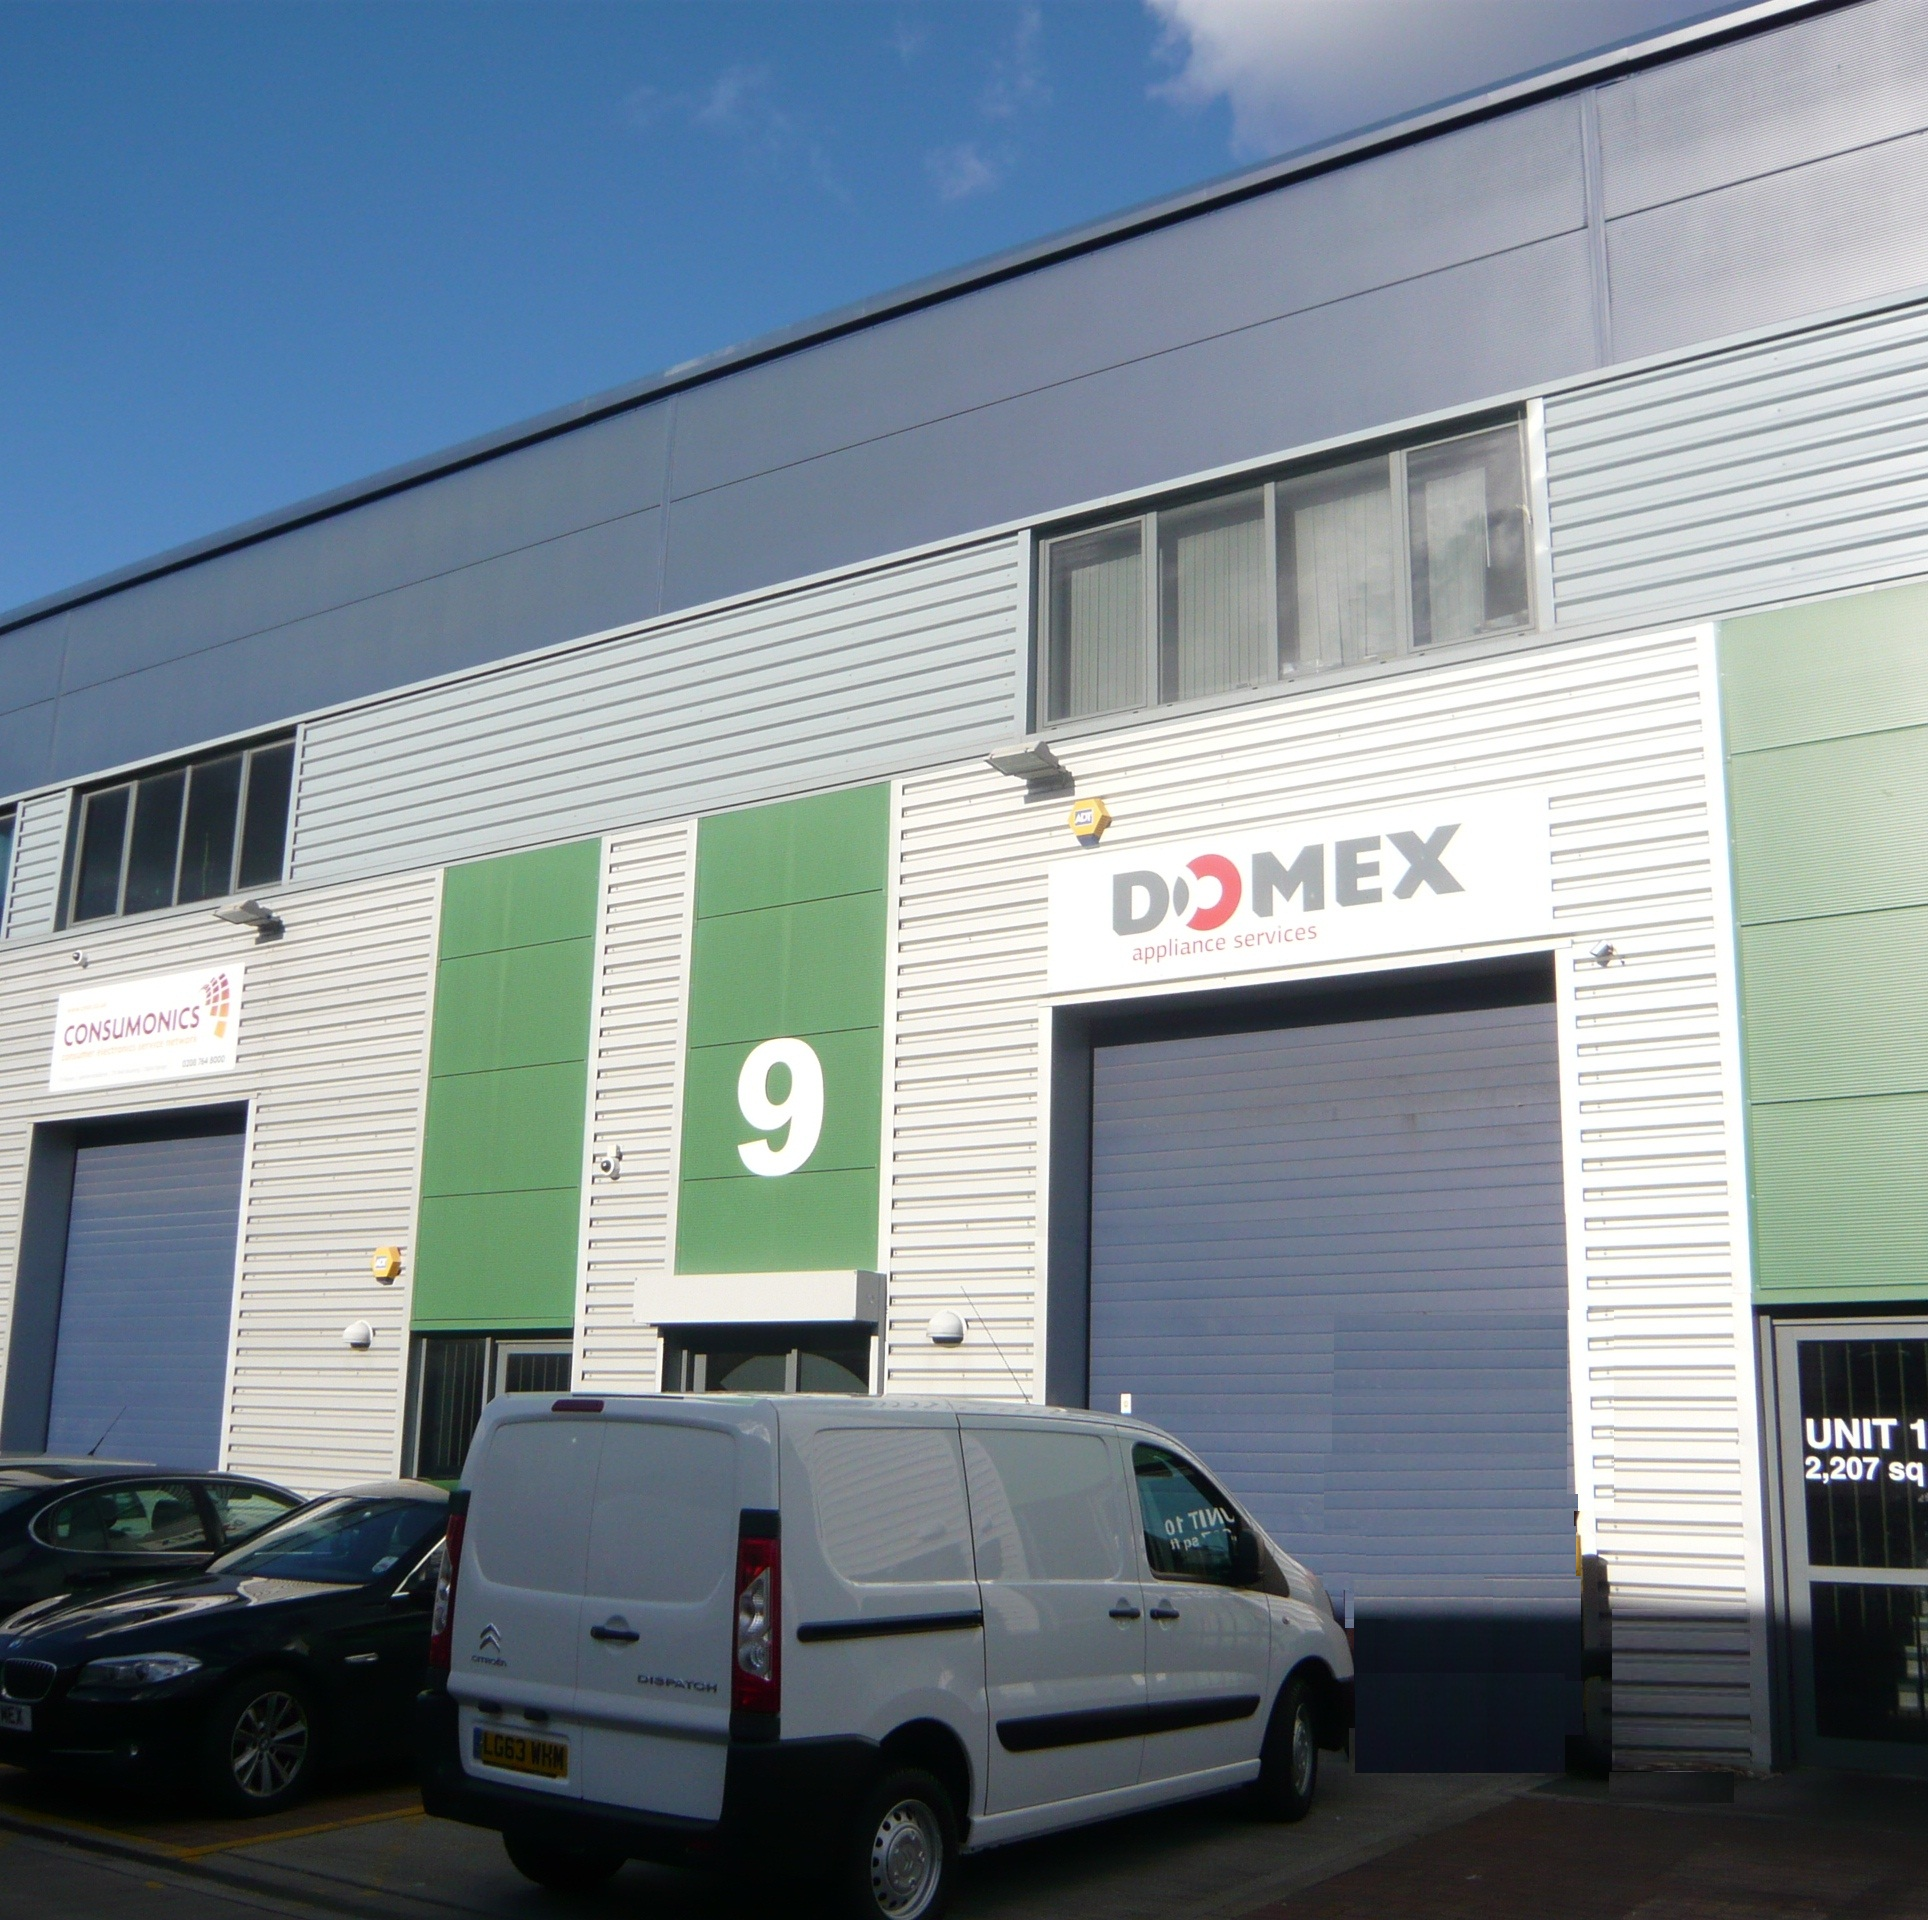 Property Under Offer Unit 9, Vale Industrial Park, Rowan